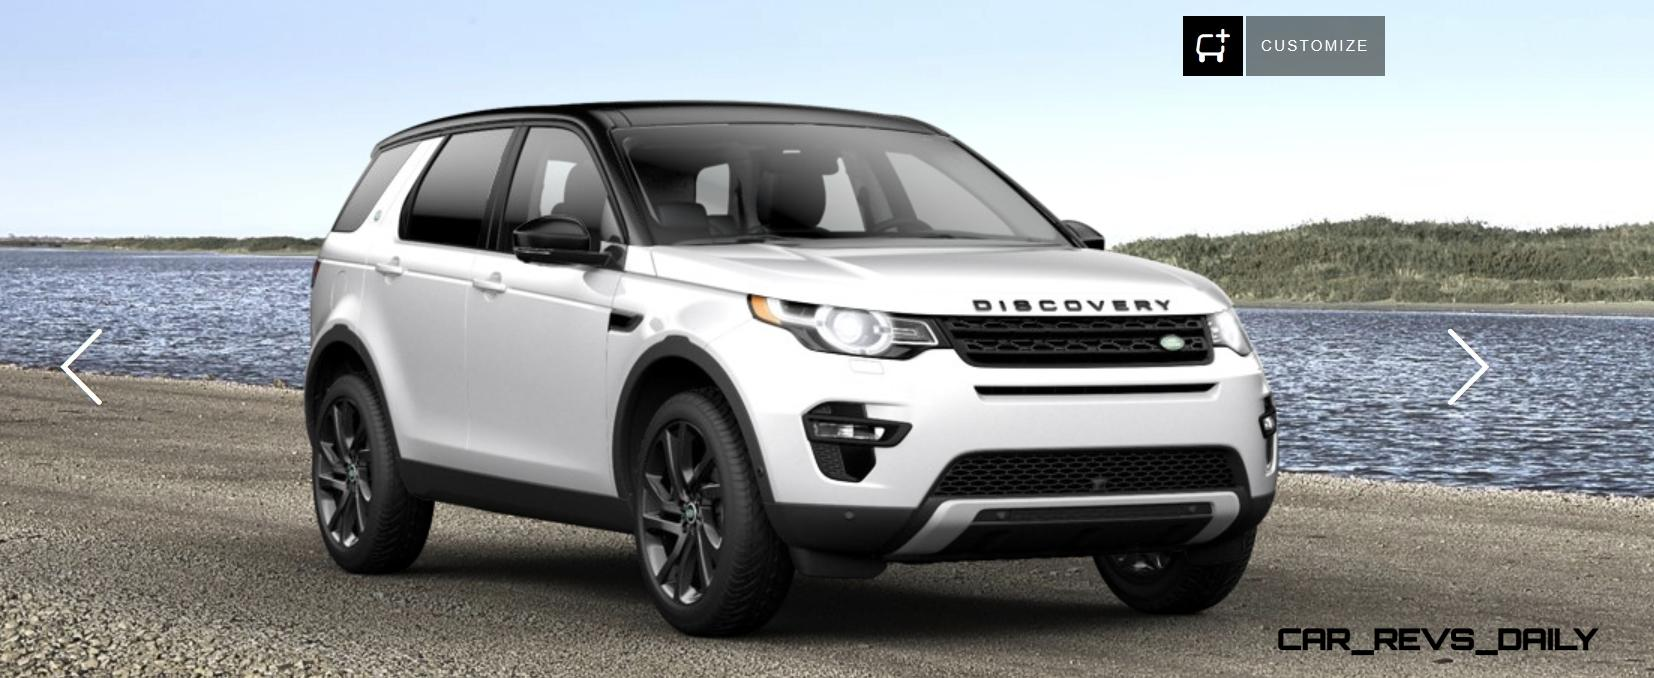 range rover discovery sport price philippines. Black Bedroom Furniture Sets. Home Design Ideas